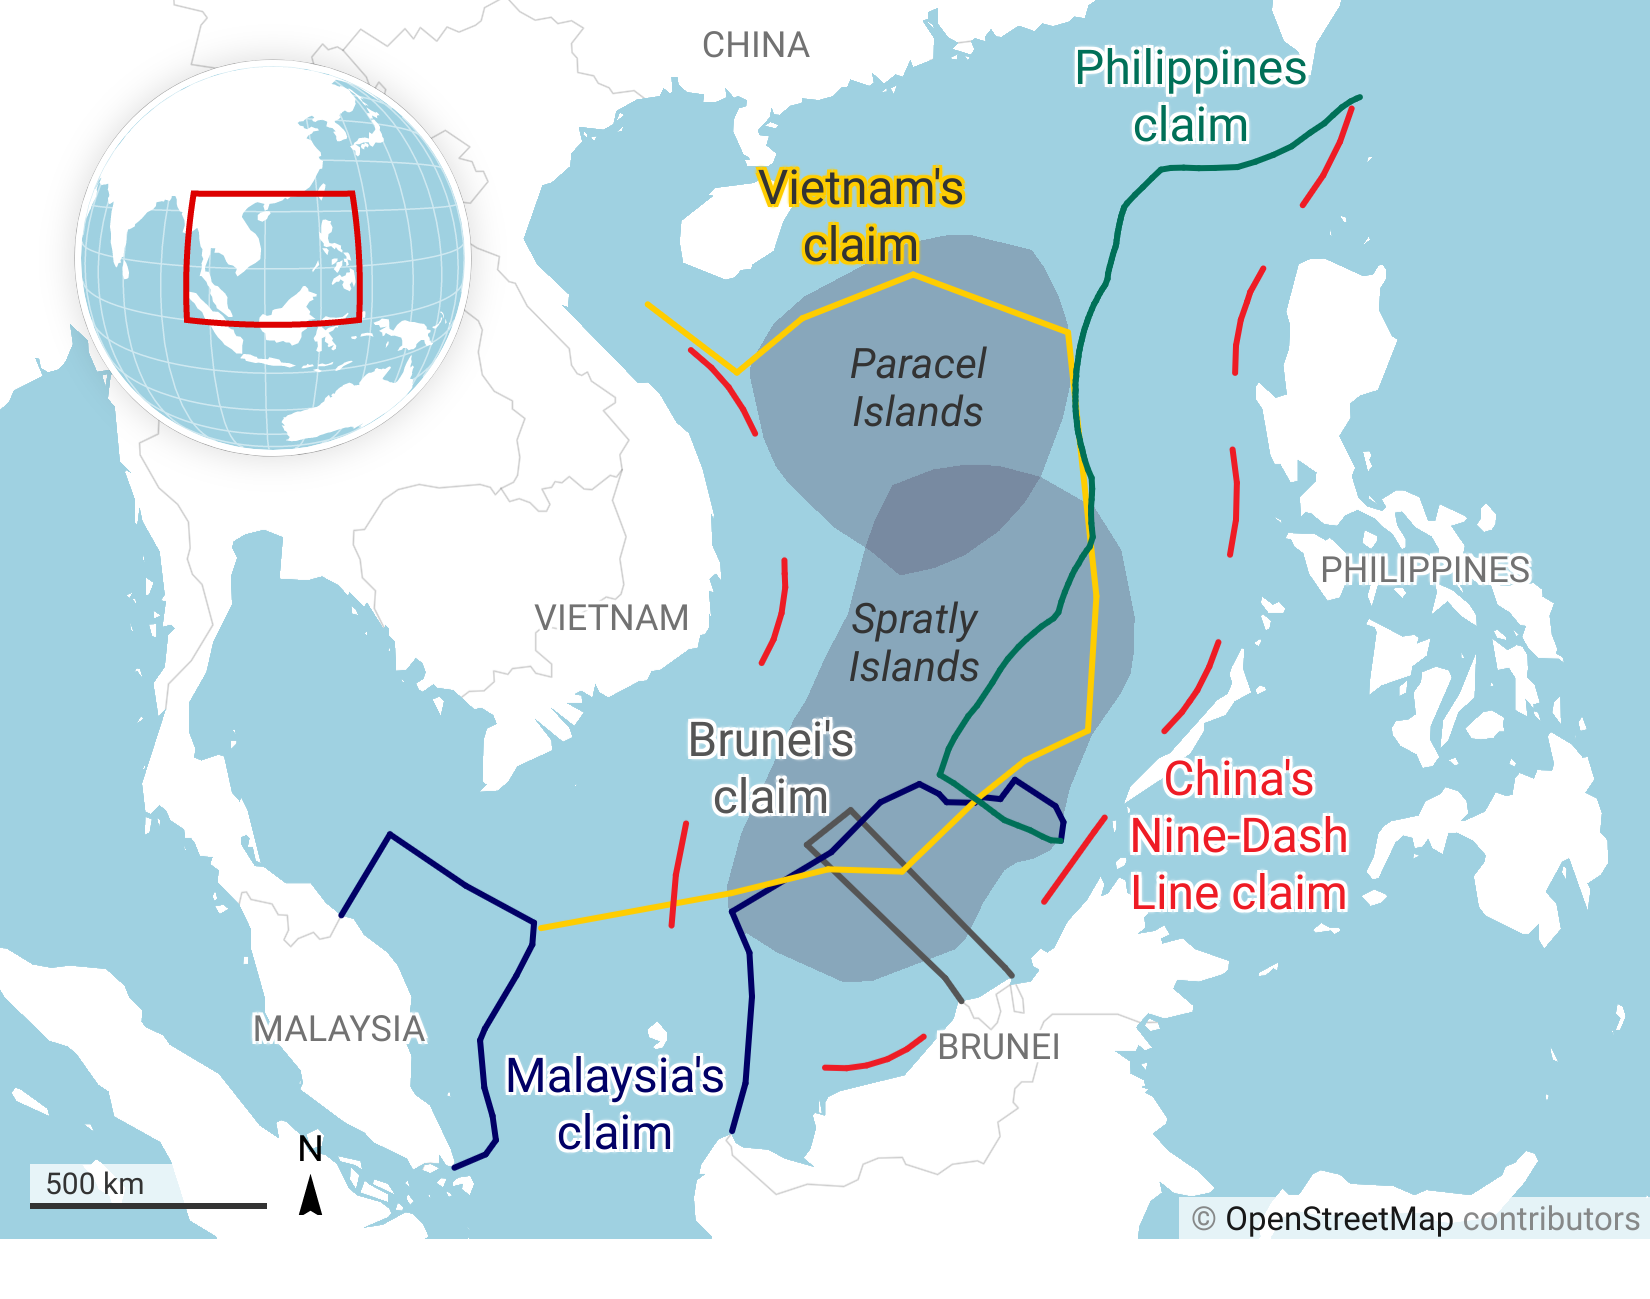 The South China Sea disputes involve both island and maritime claims by several sovereign states within the region.